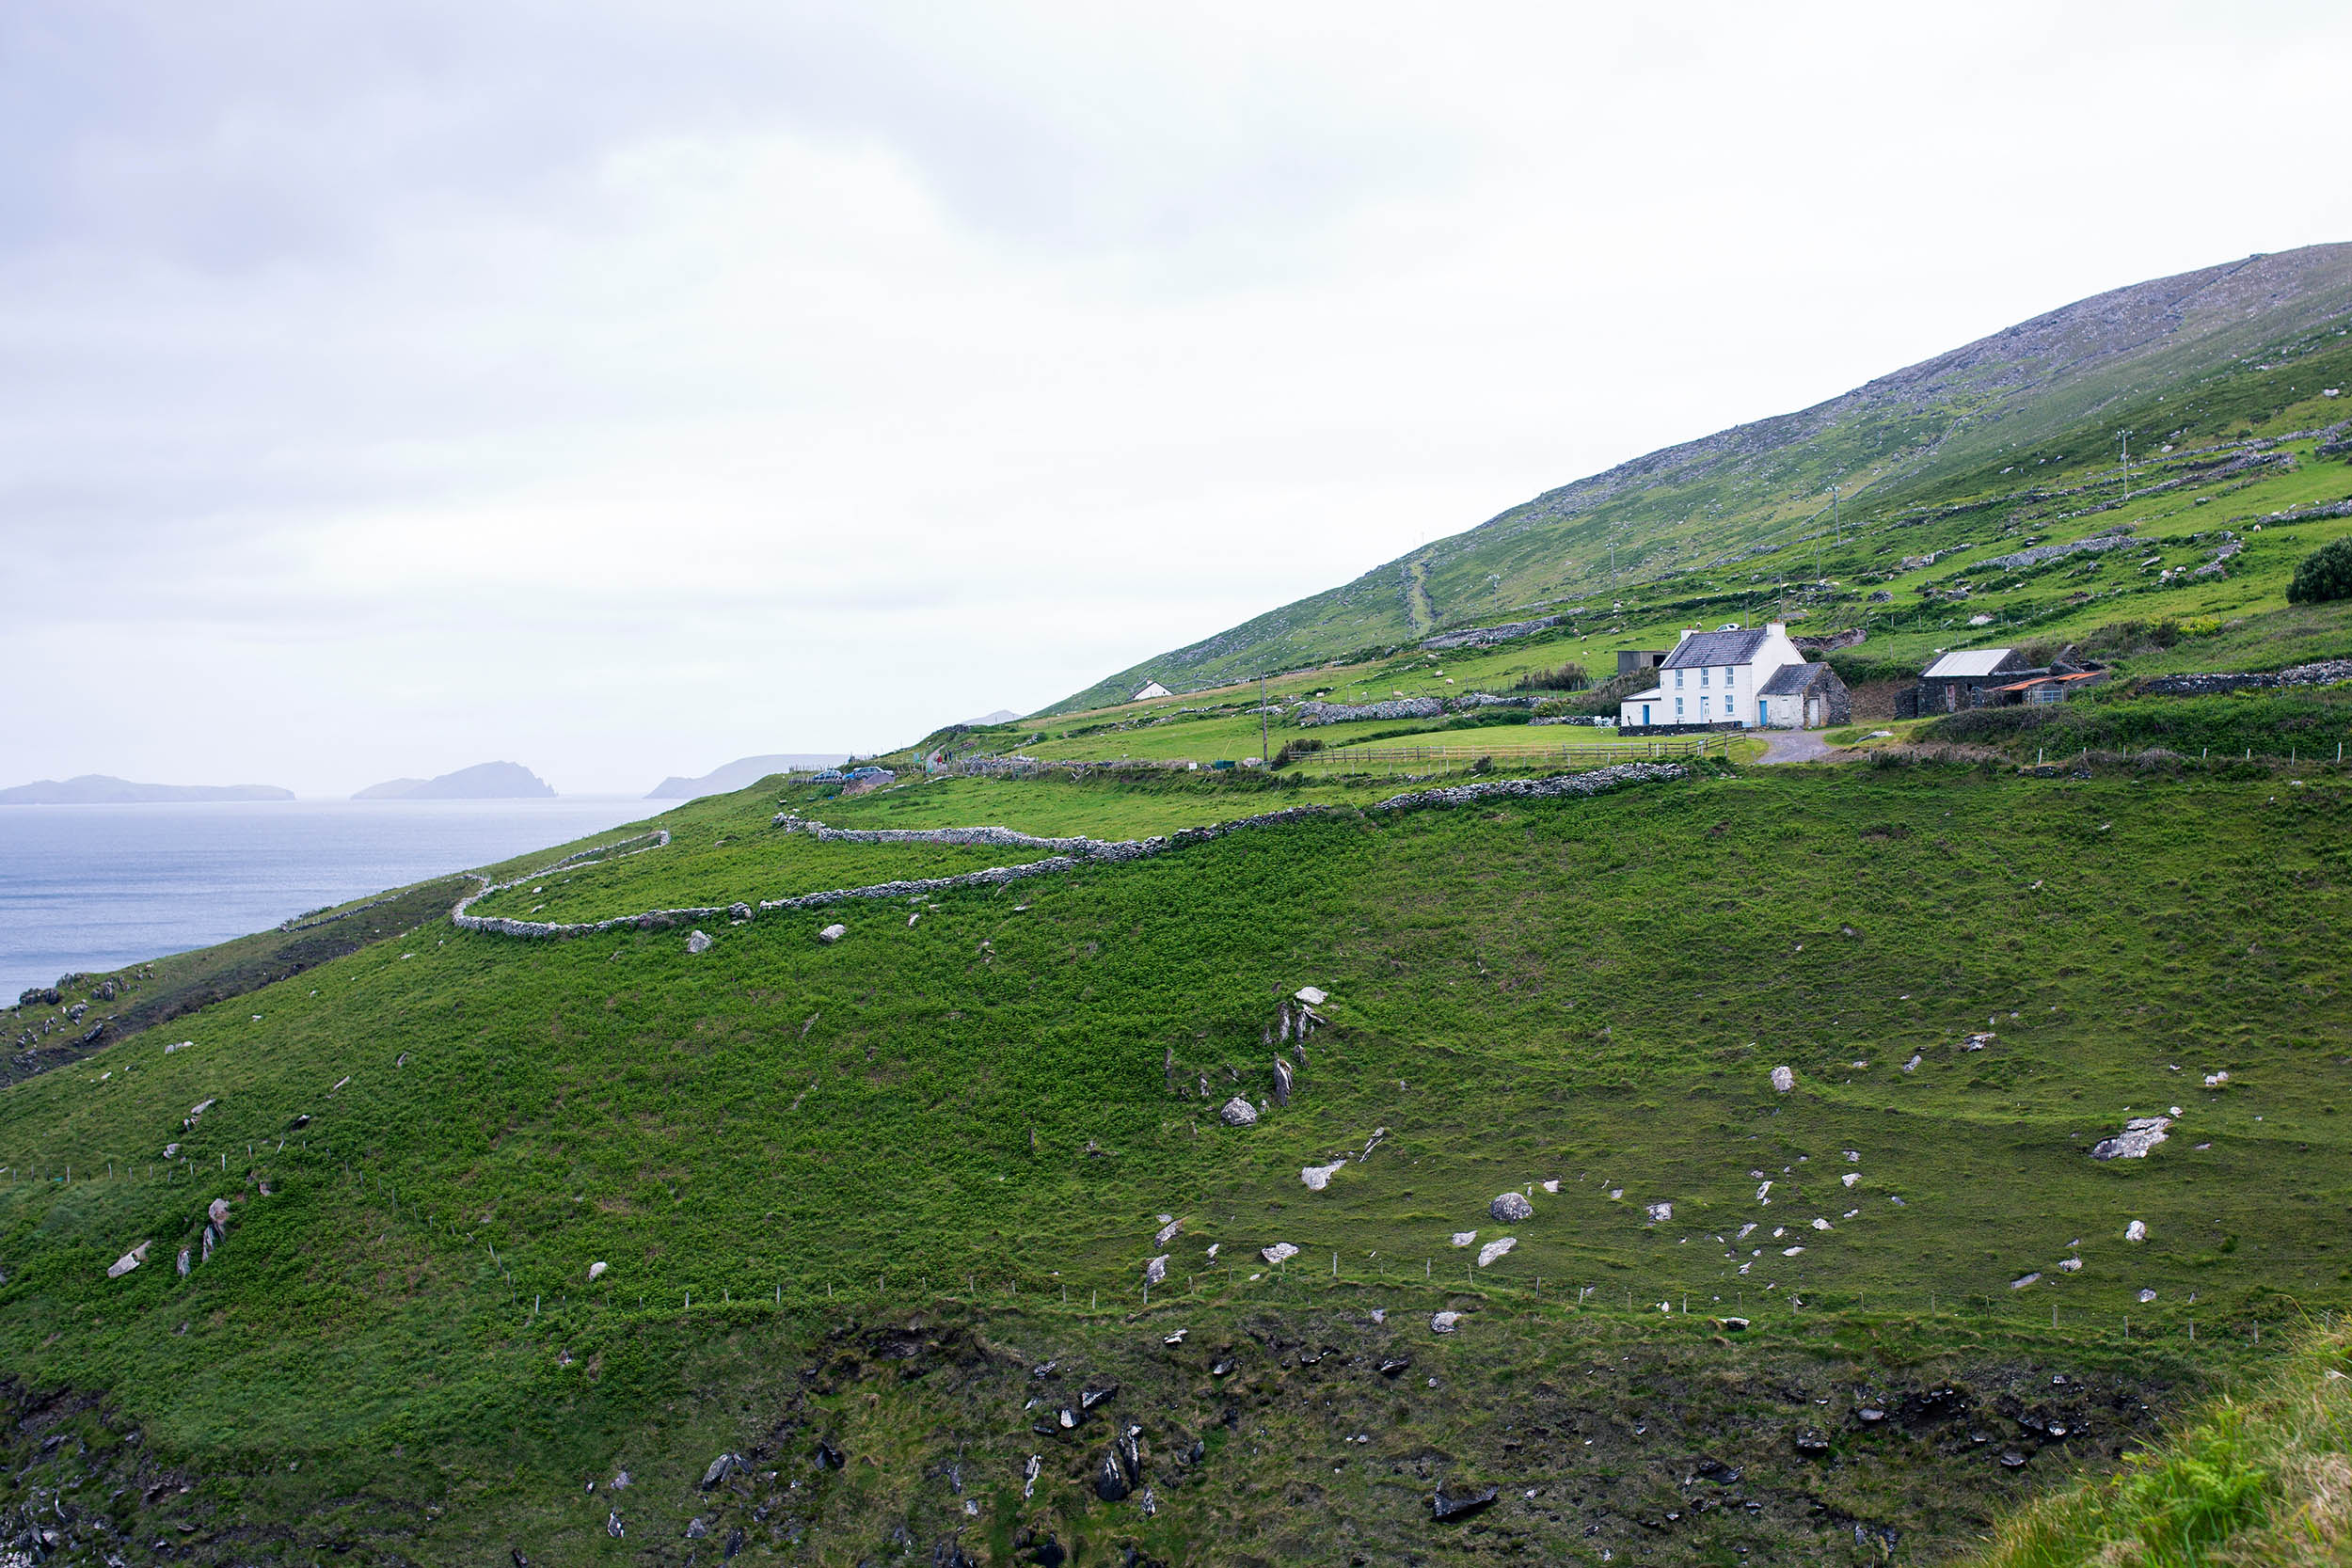 IRELAND_KERRY_SLEAHEAD_0029